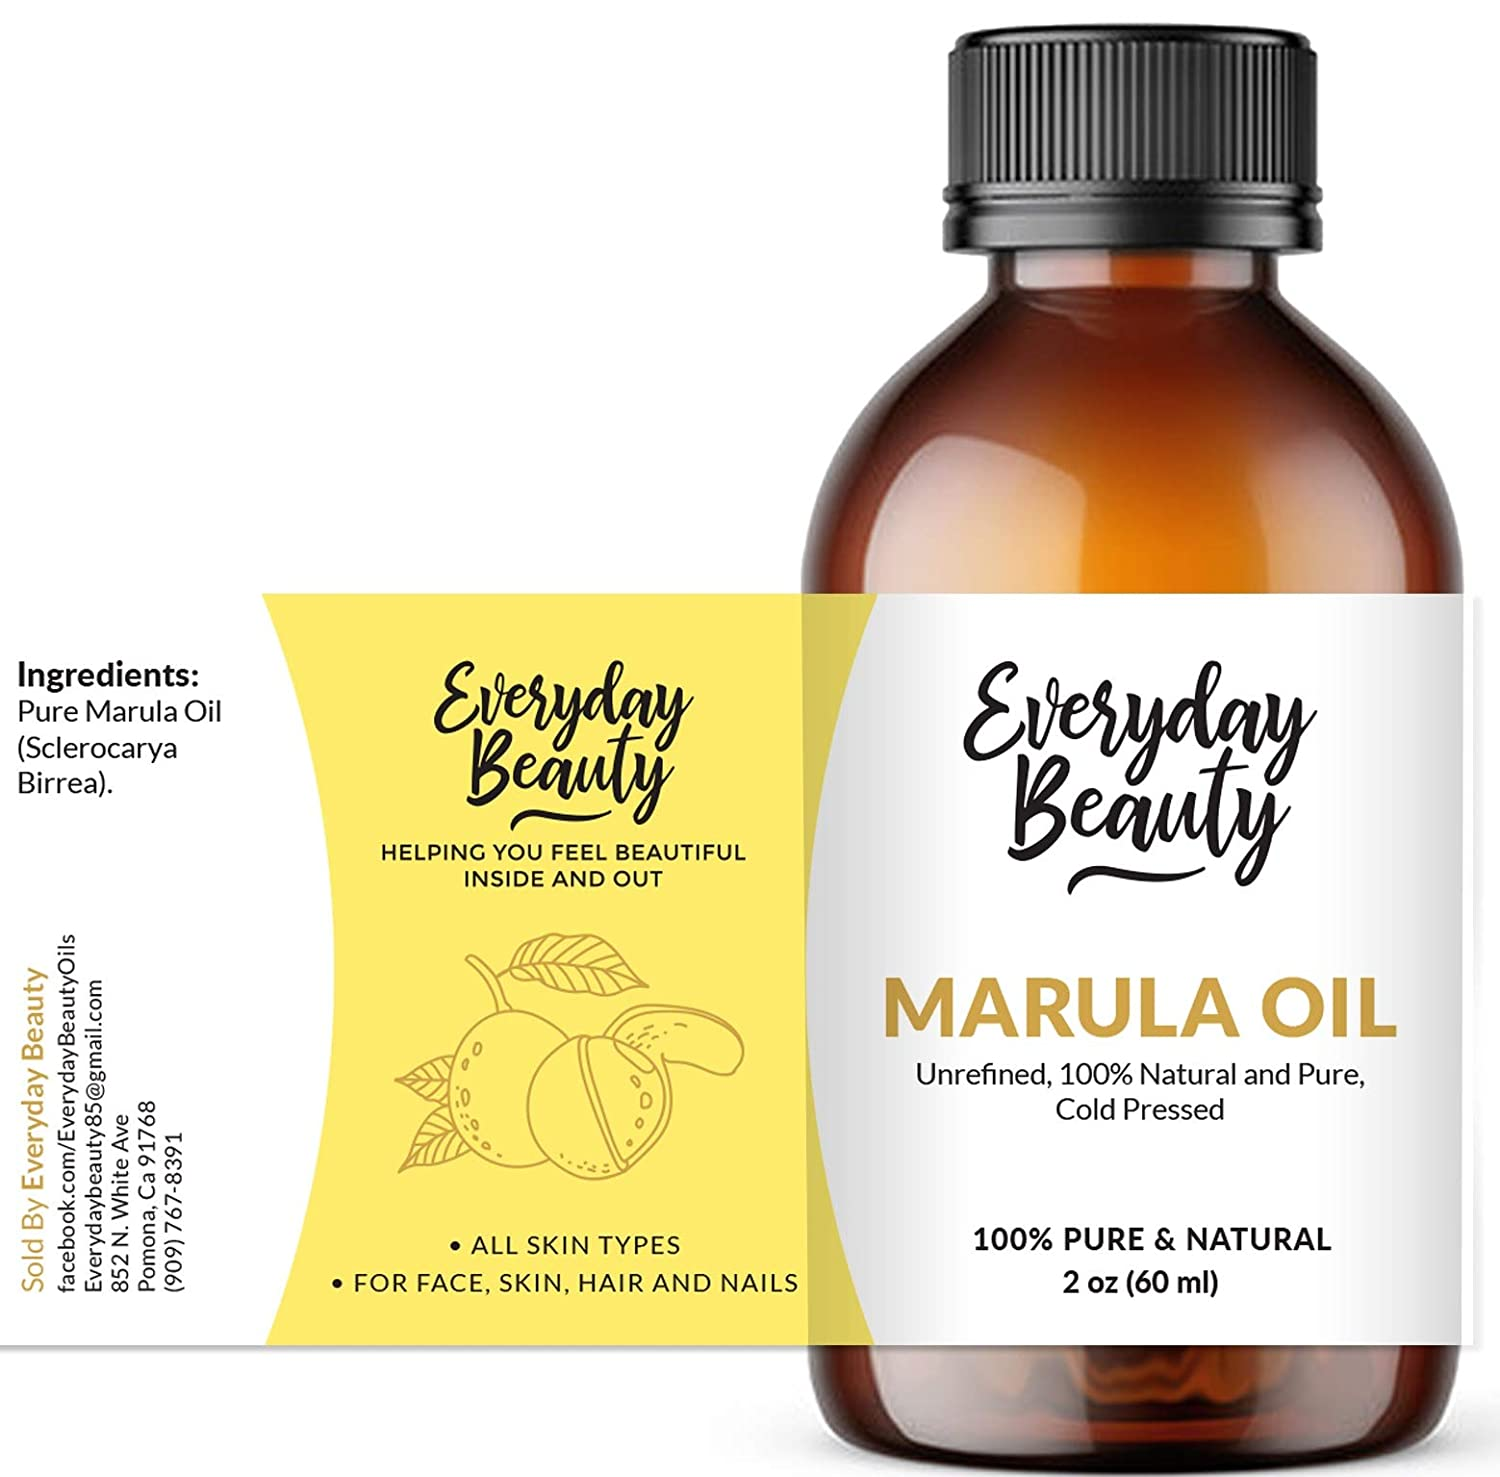 Marula Oil - 100% Pure Extra Virgin Unrefined Luxury Facial Oil 2oz - Cold Pressed & All Natural for Face, Skin and Hair - DIY Cosmetics - Premium Quality Bulk Price: Beauty